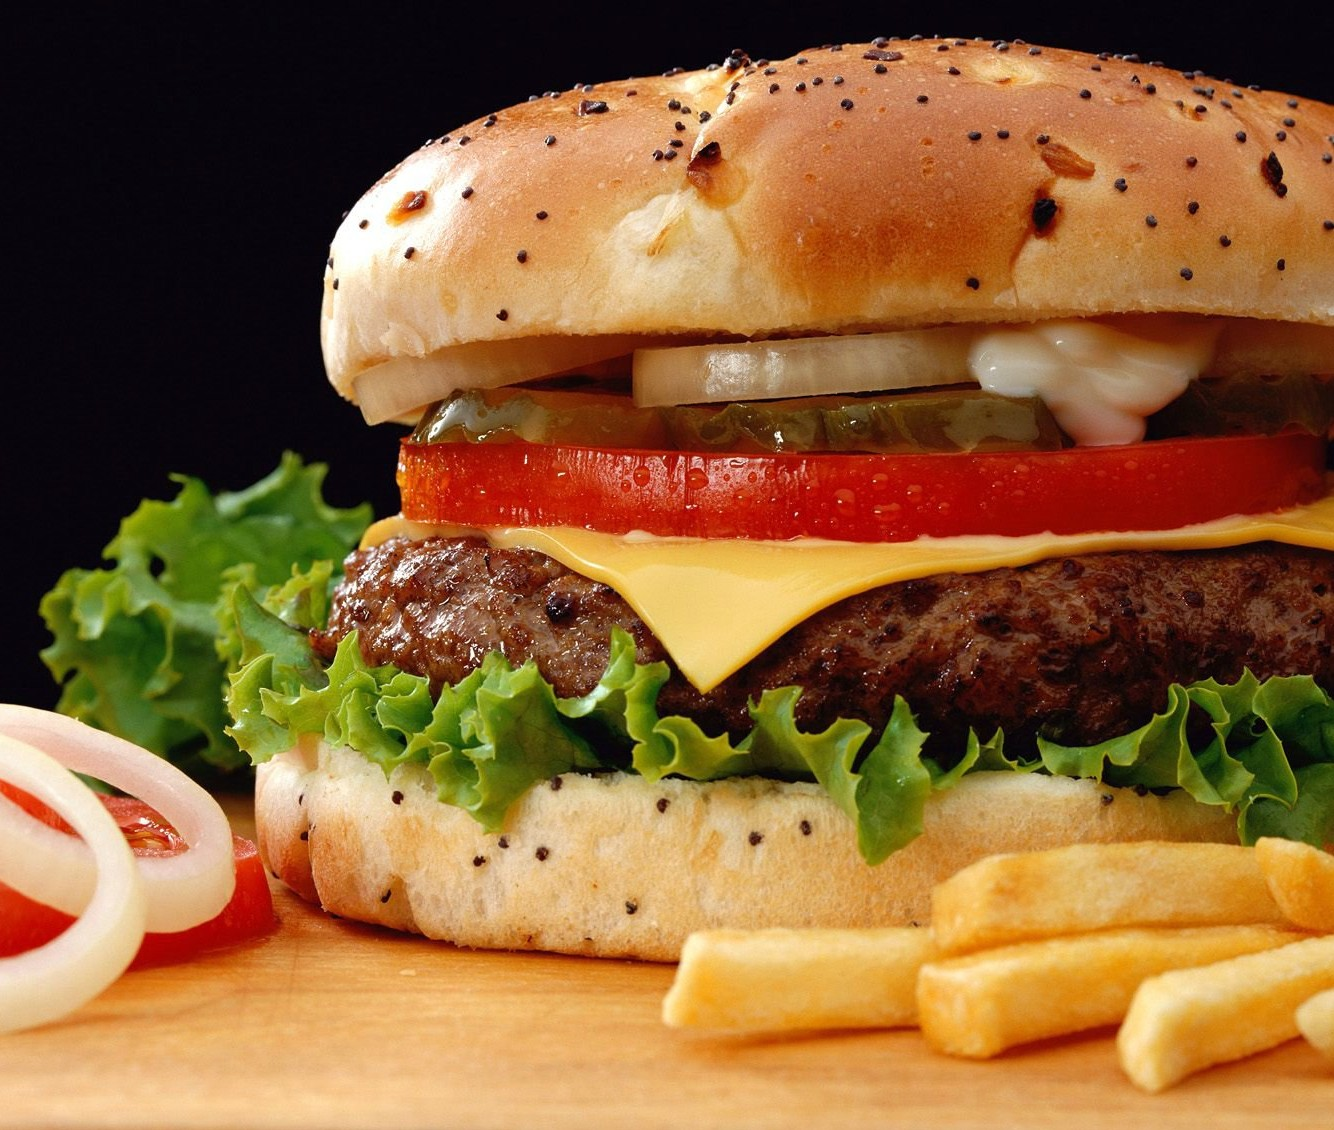 Slow Food vs McDonald's: L'Expo si merita meno ideologia